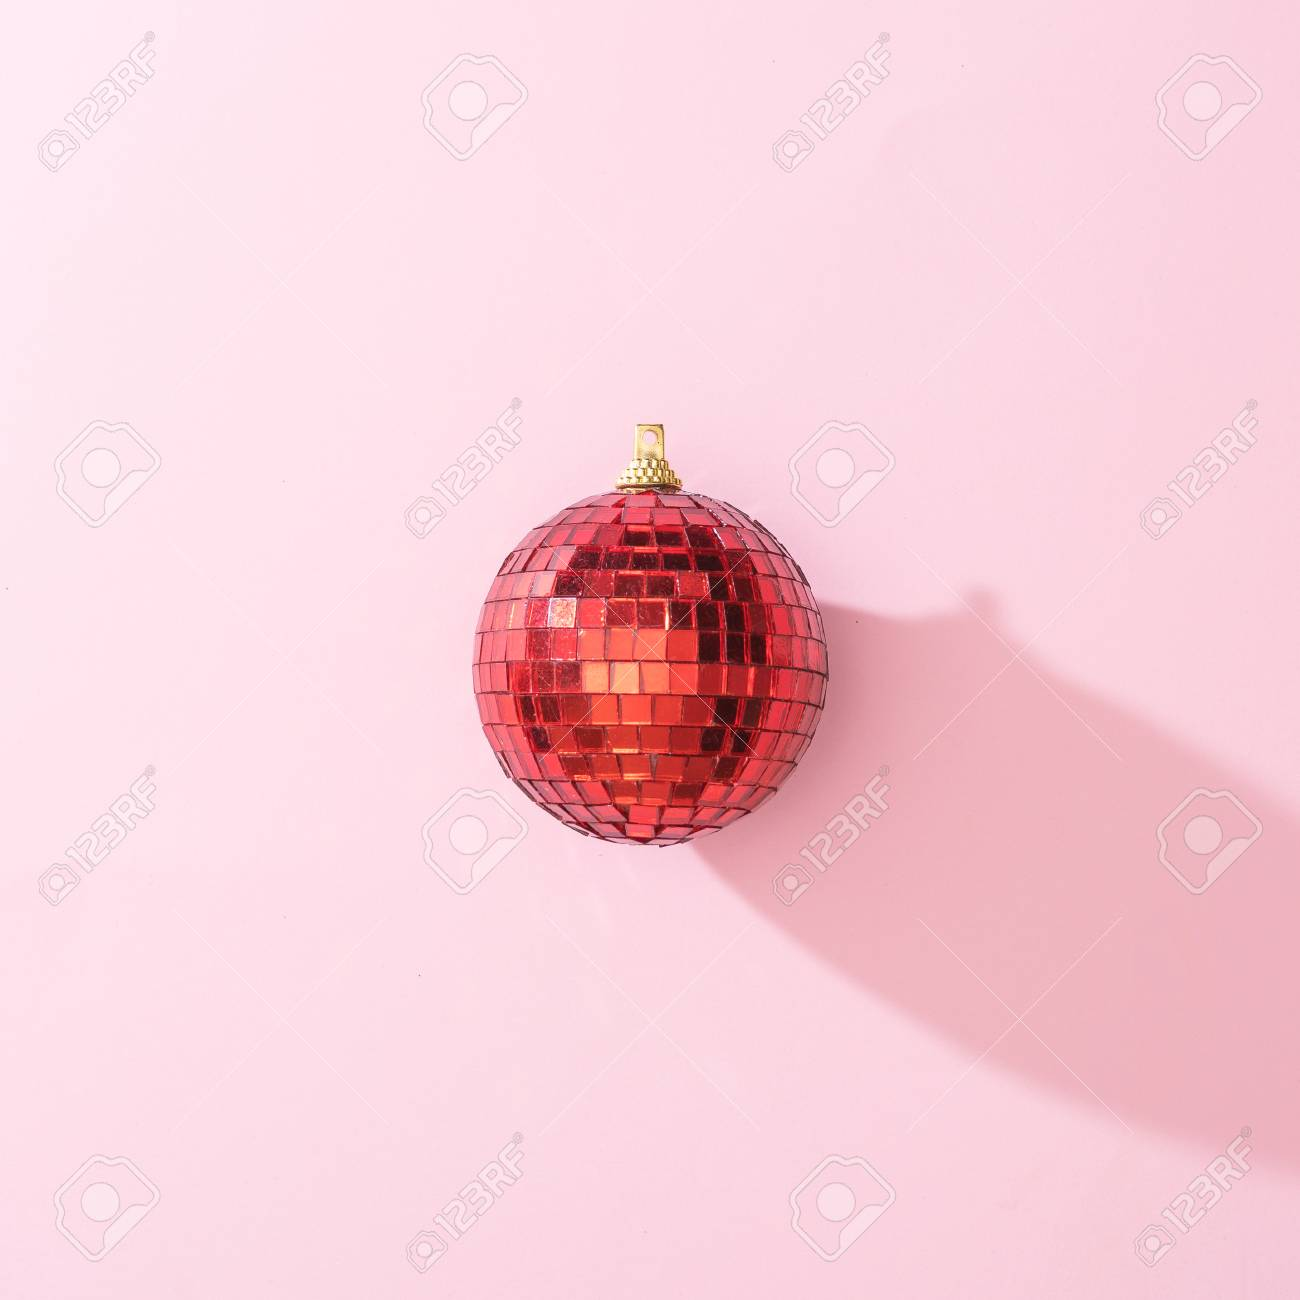 Christmas Disco Ball.Red Christmas Disco Ball Bauble On Pink Background Minimal New